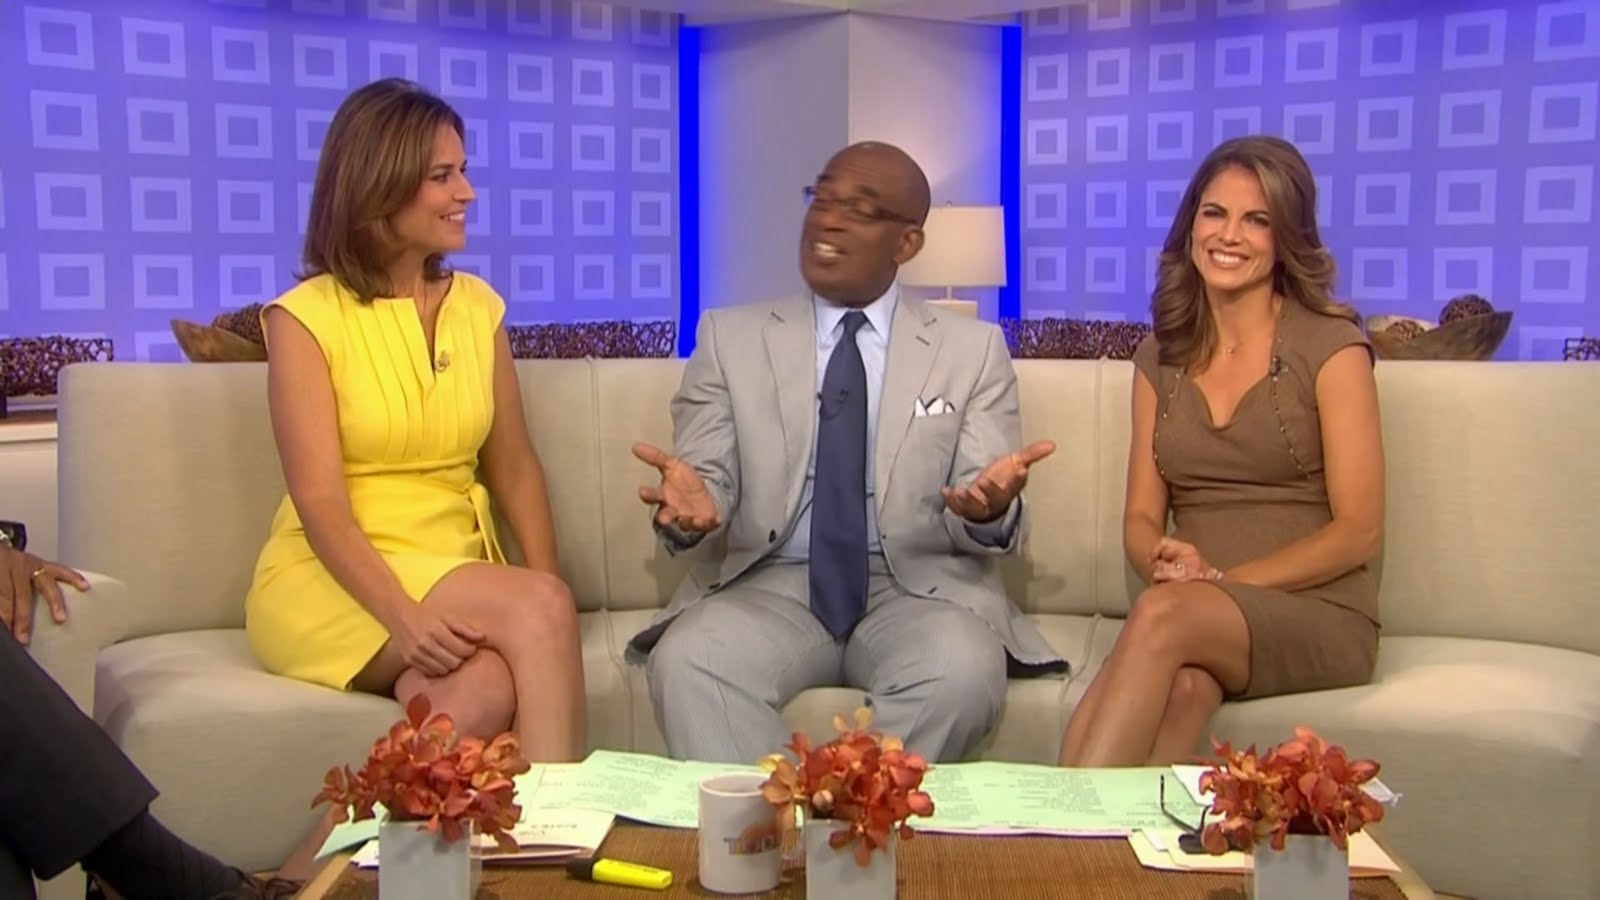 Savannah Guthrie Feet http://www.legcross.com/2010/08/savannah-guthrie-pretty-in-yellow.html